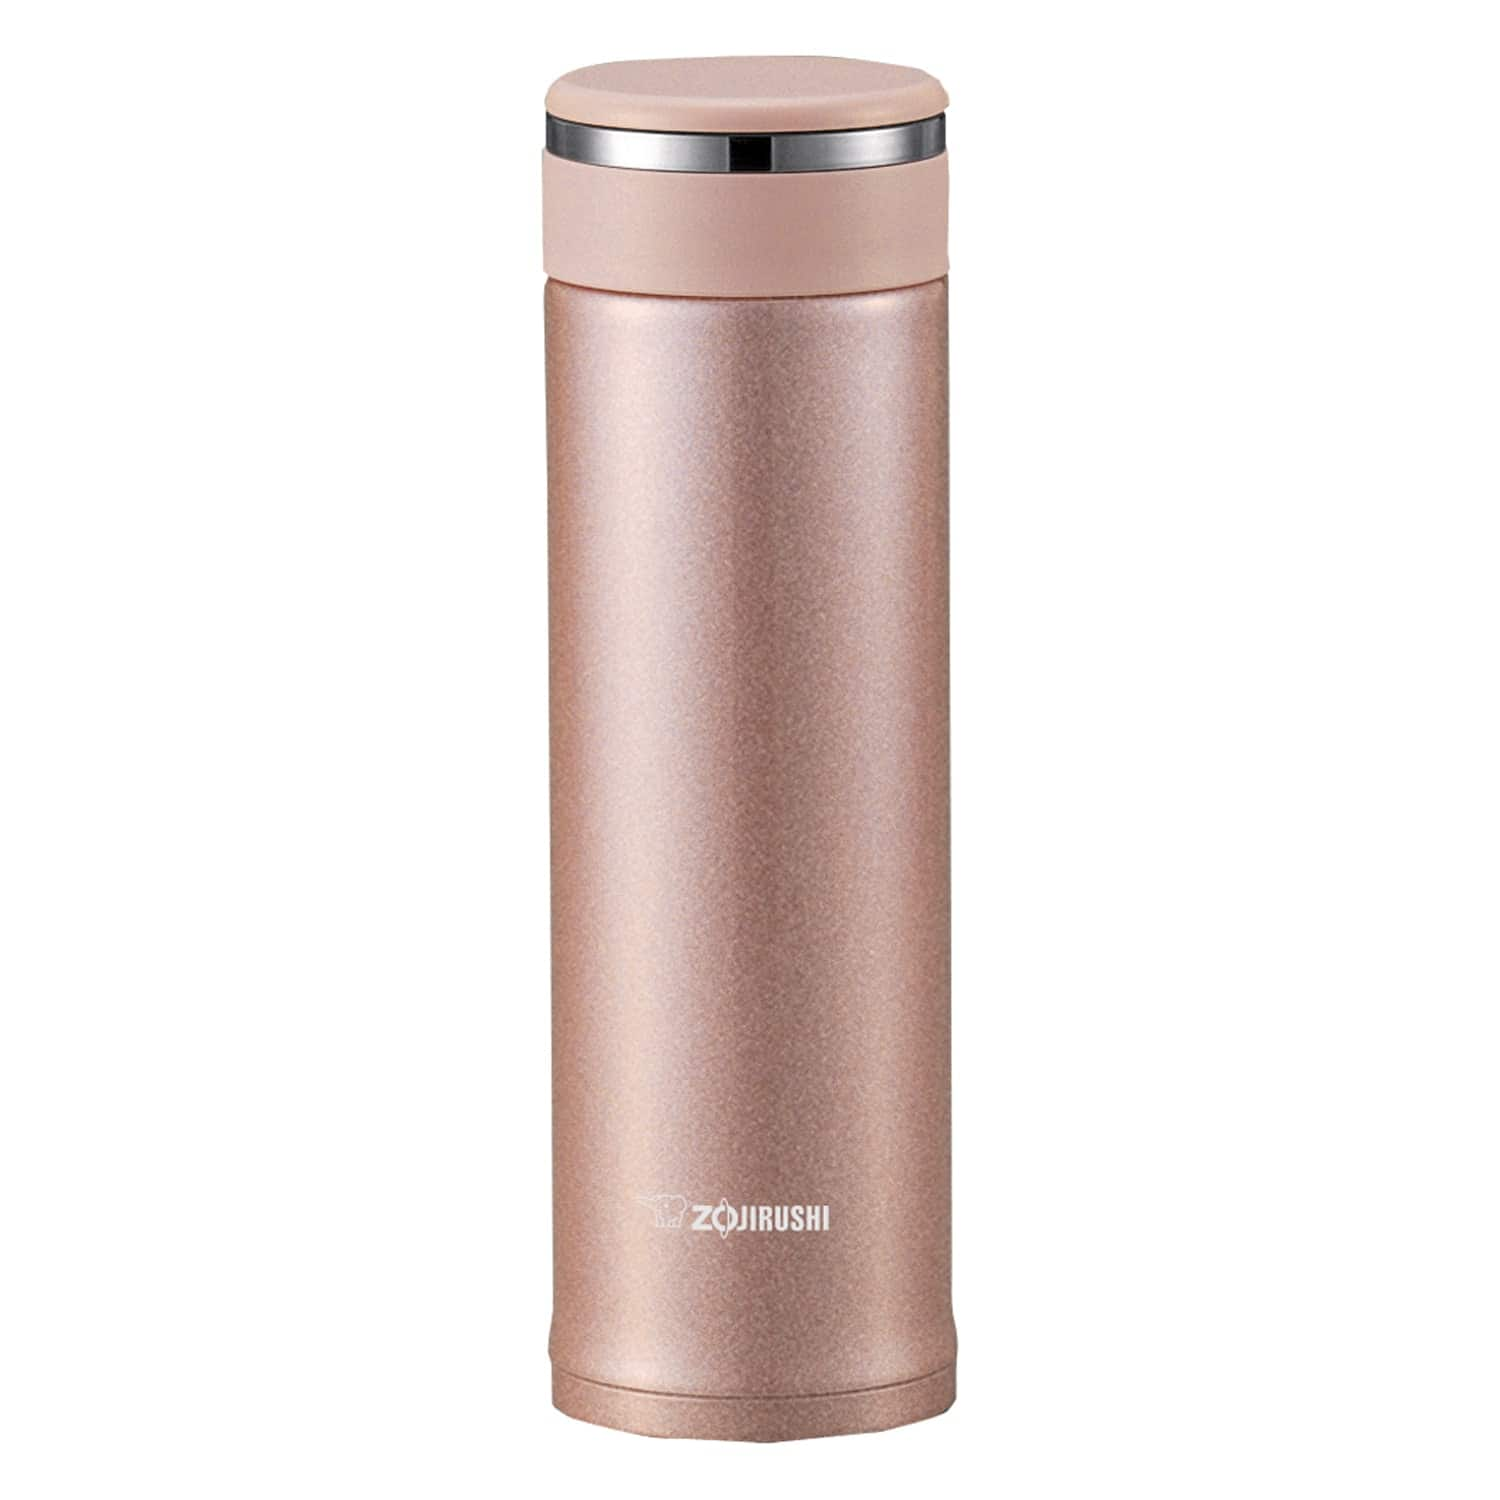 Zojirushi SM-JTE46PX Stainless Steel Travel Mug With Tea Leaf Filter, 16 Ounce, Pink Champagne